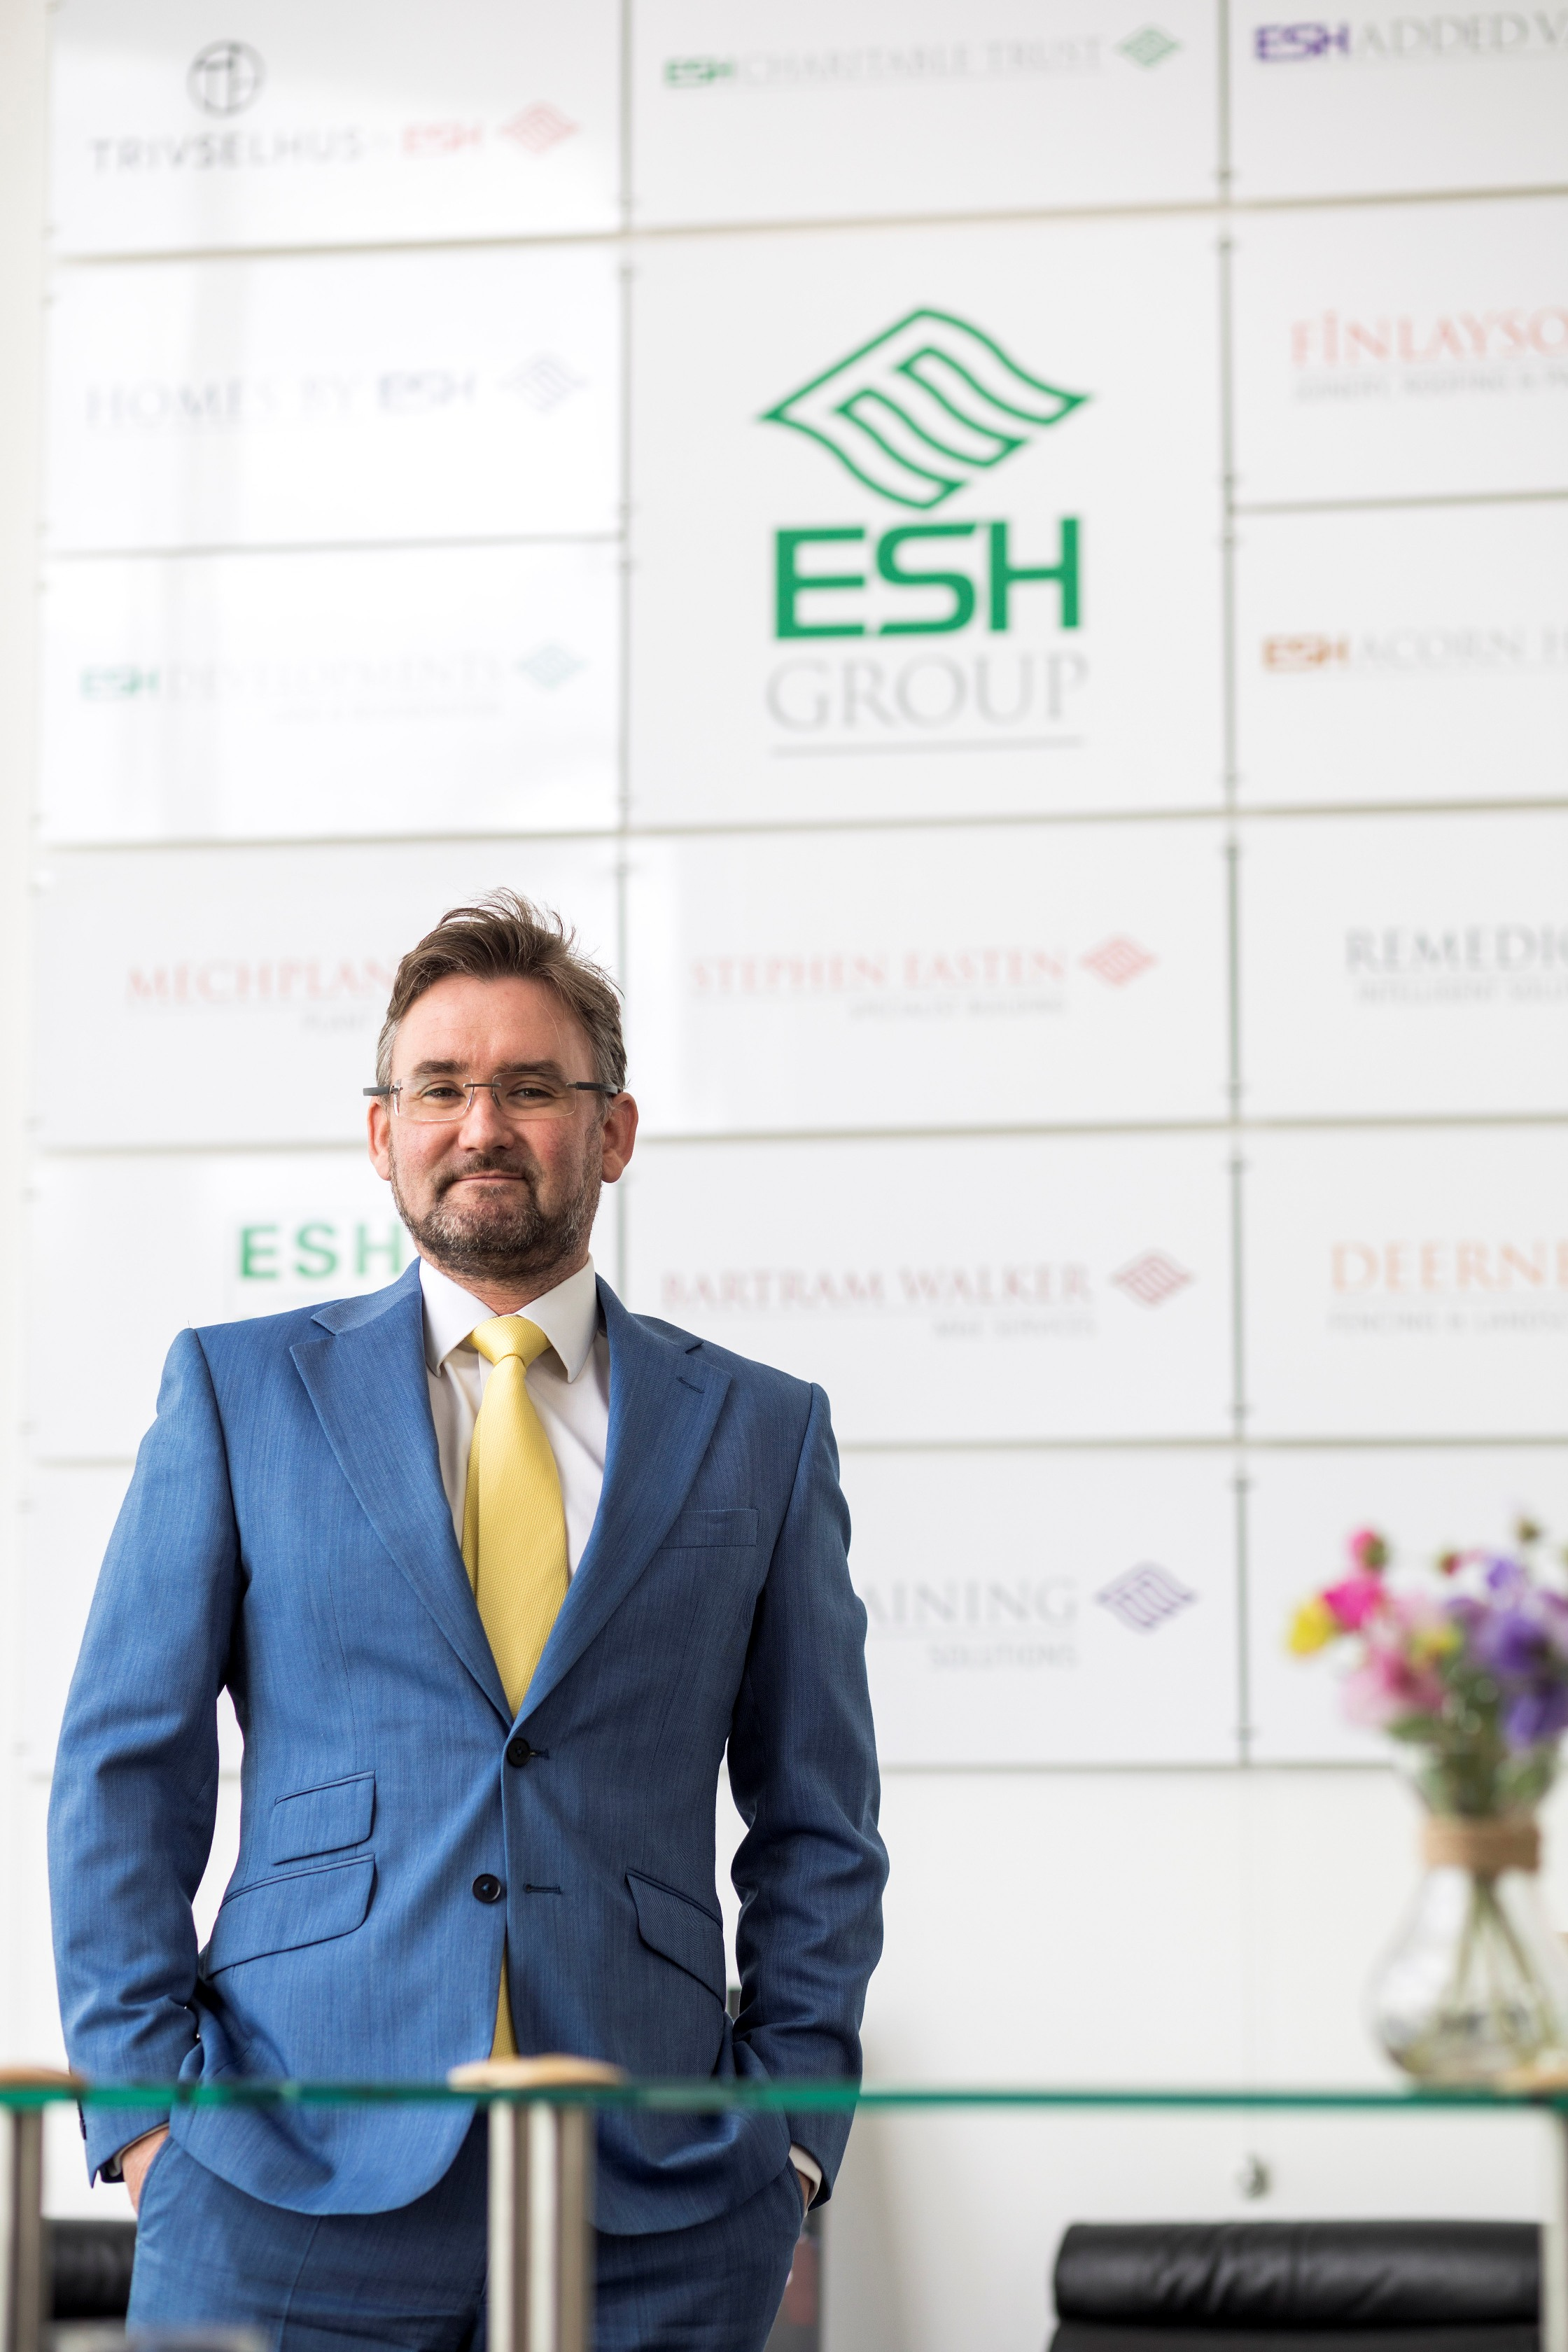 Esh Construction to deliver homes across North-east, Yorkshire and Humber through multi-billion delivery panel